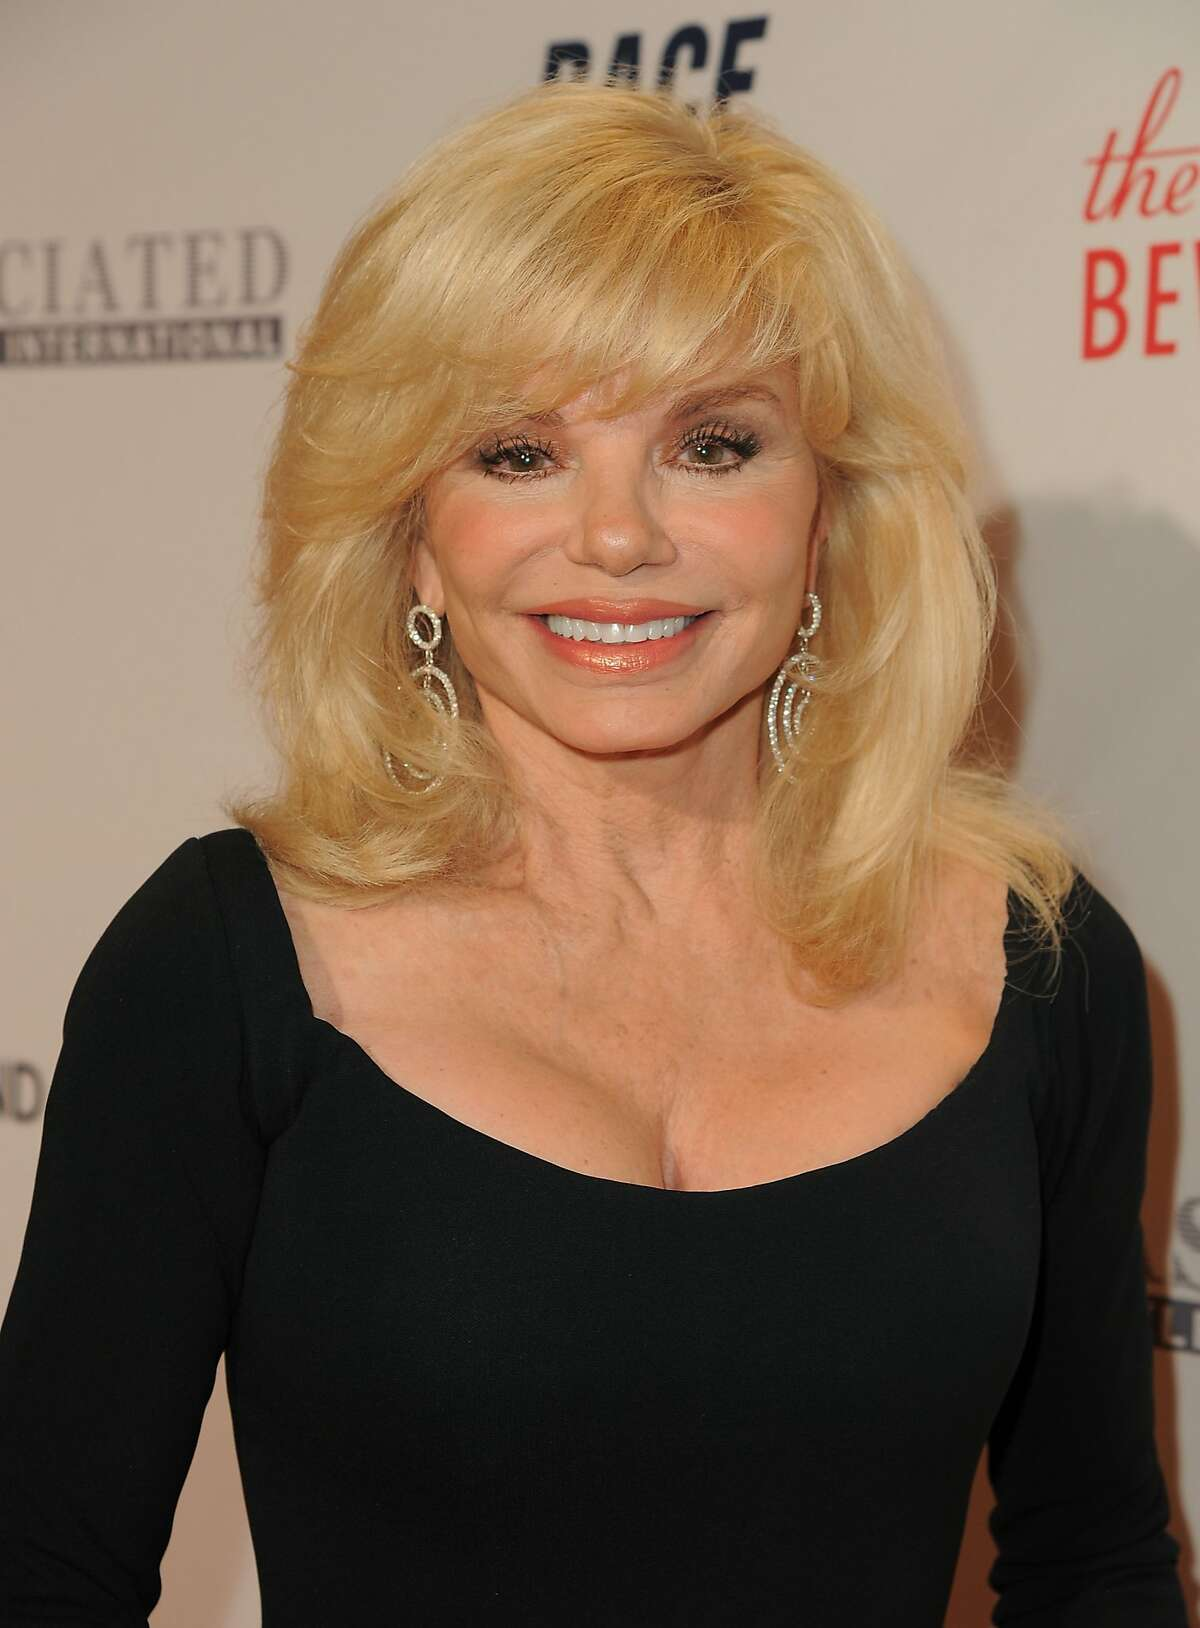 Actress Loni Anderson attends the 23rd Annual Race To Erase MS Gala at The Beverly Hilton Hotel on April 15, 2016 in Beverly Hills, California. (Photo by Angela Weiss/Getty Images for Race To Erase MS)